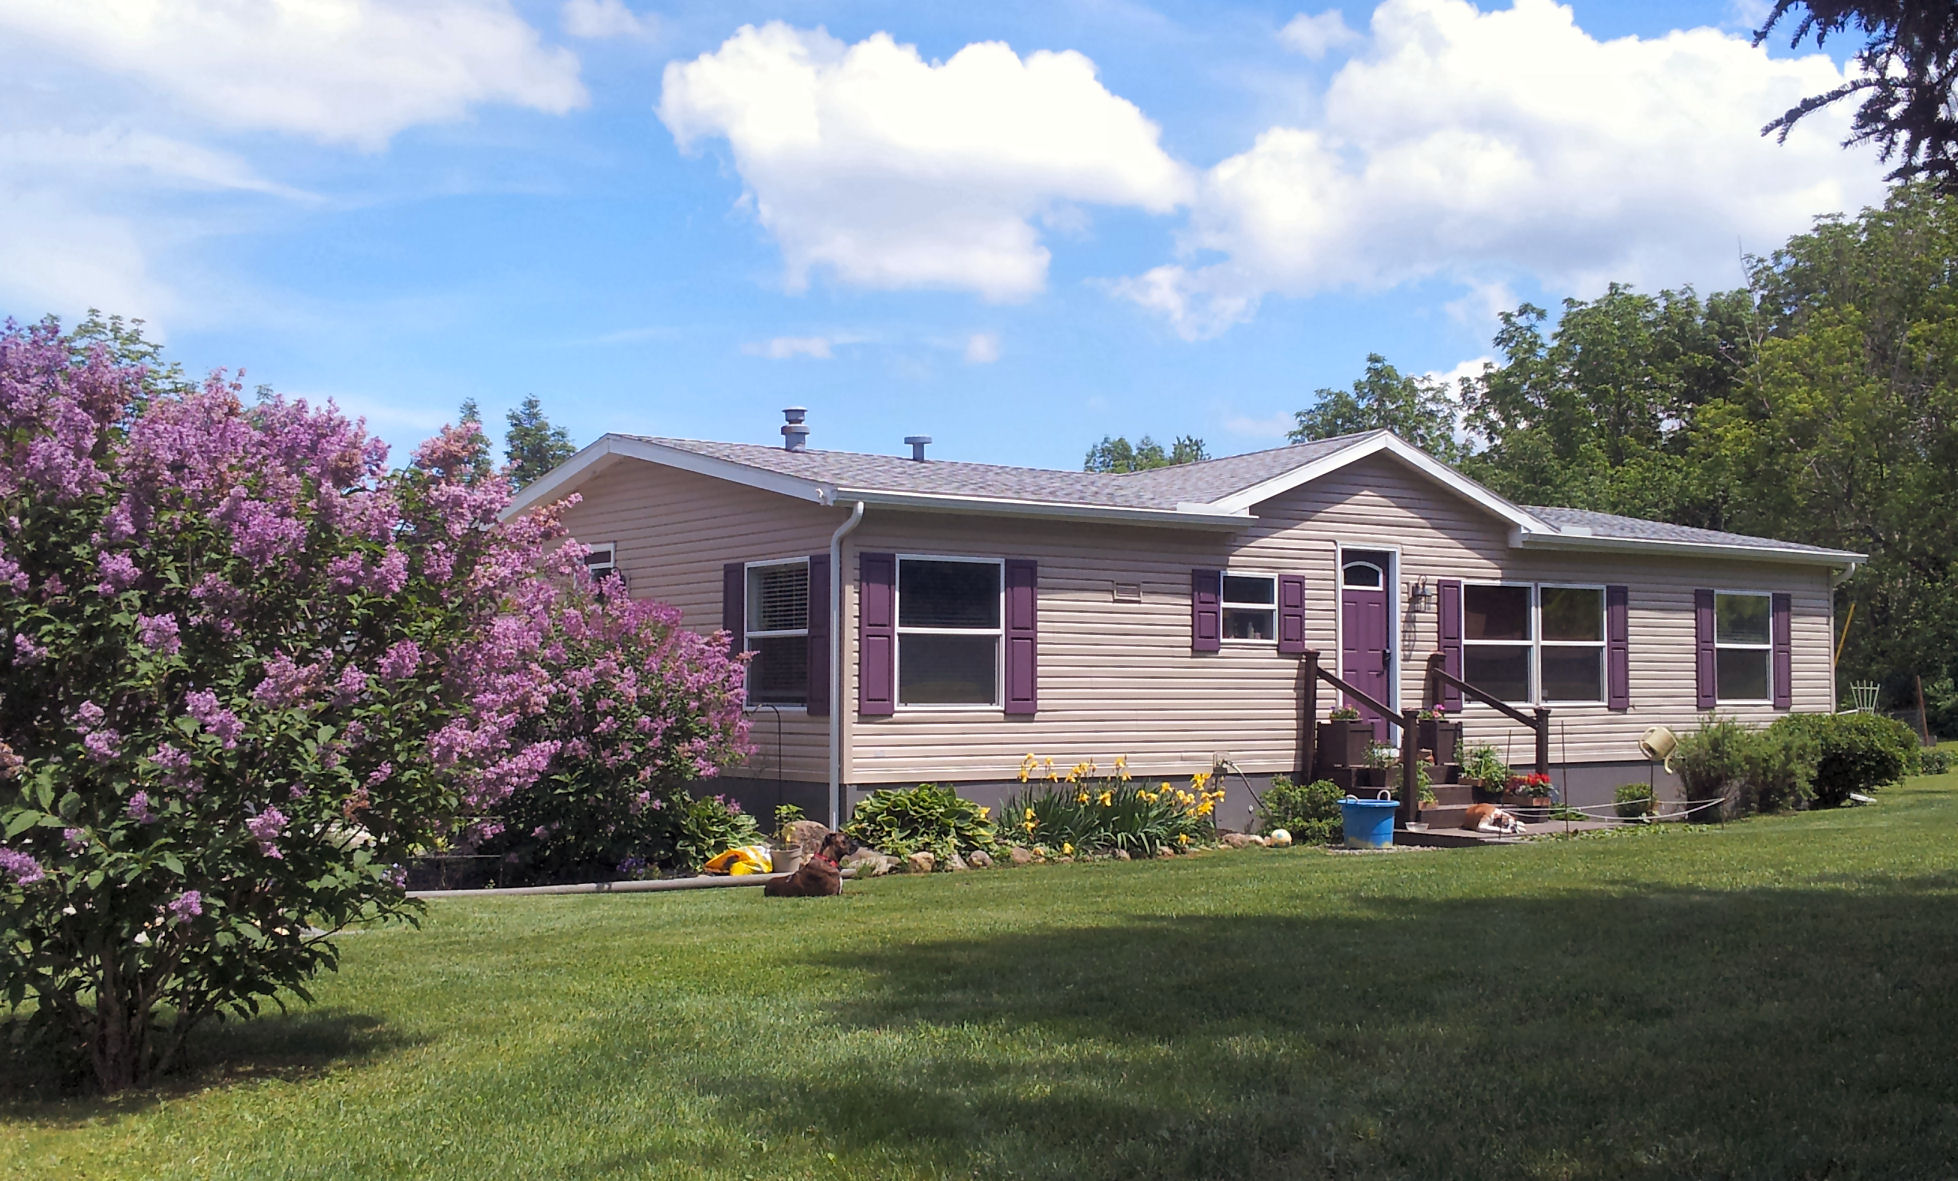 Can I Paint My Mobile Home? Yes I Can! - My Mobile Home Makeover